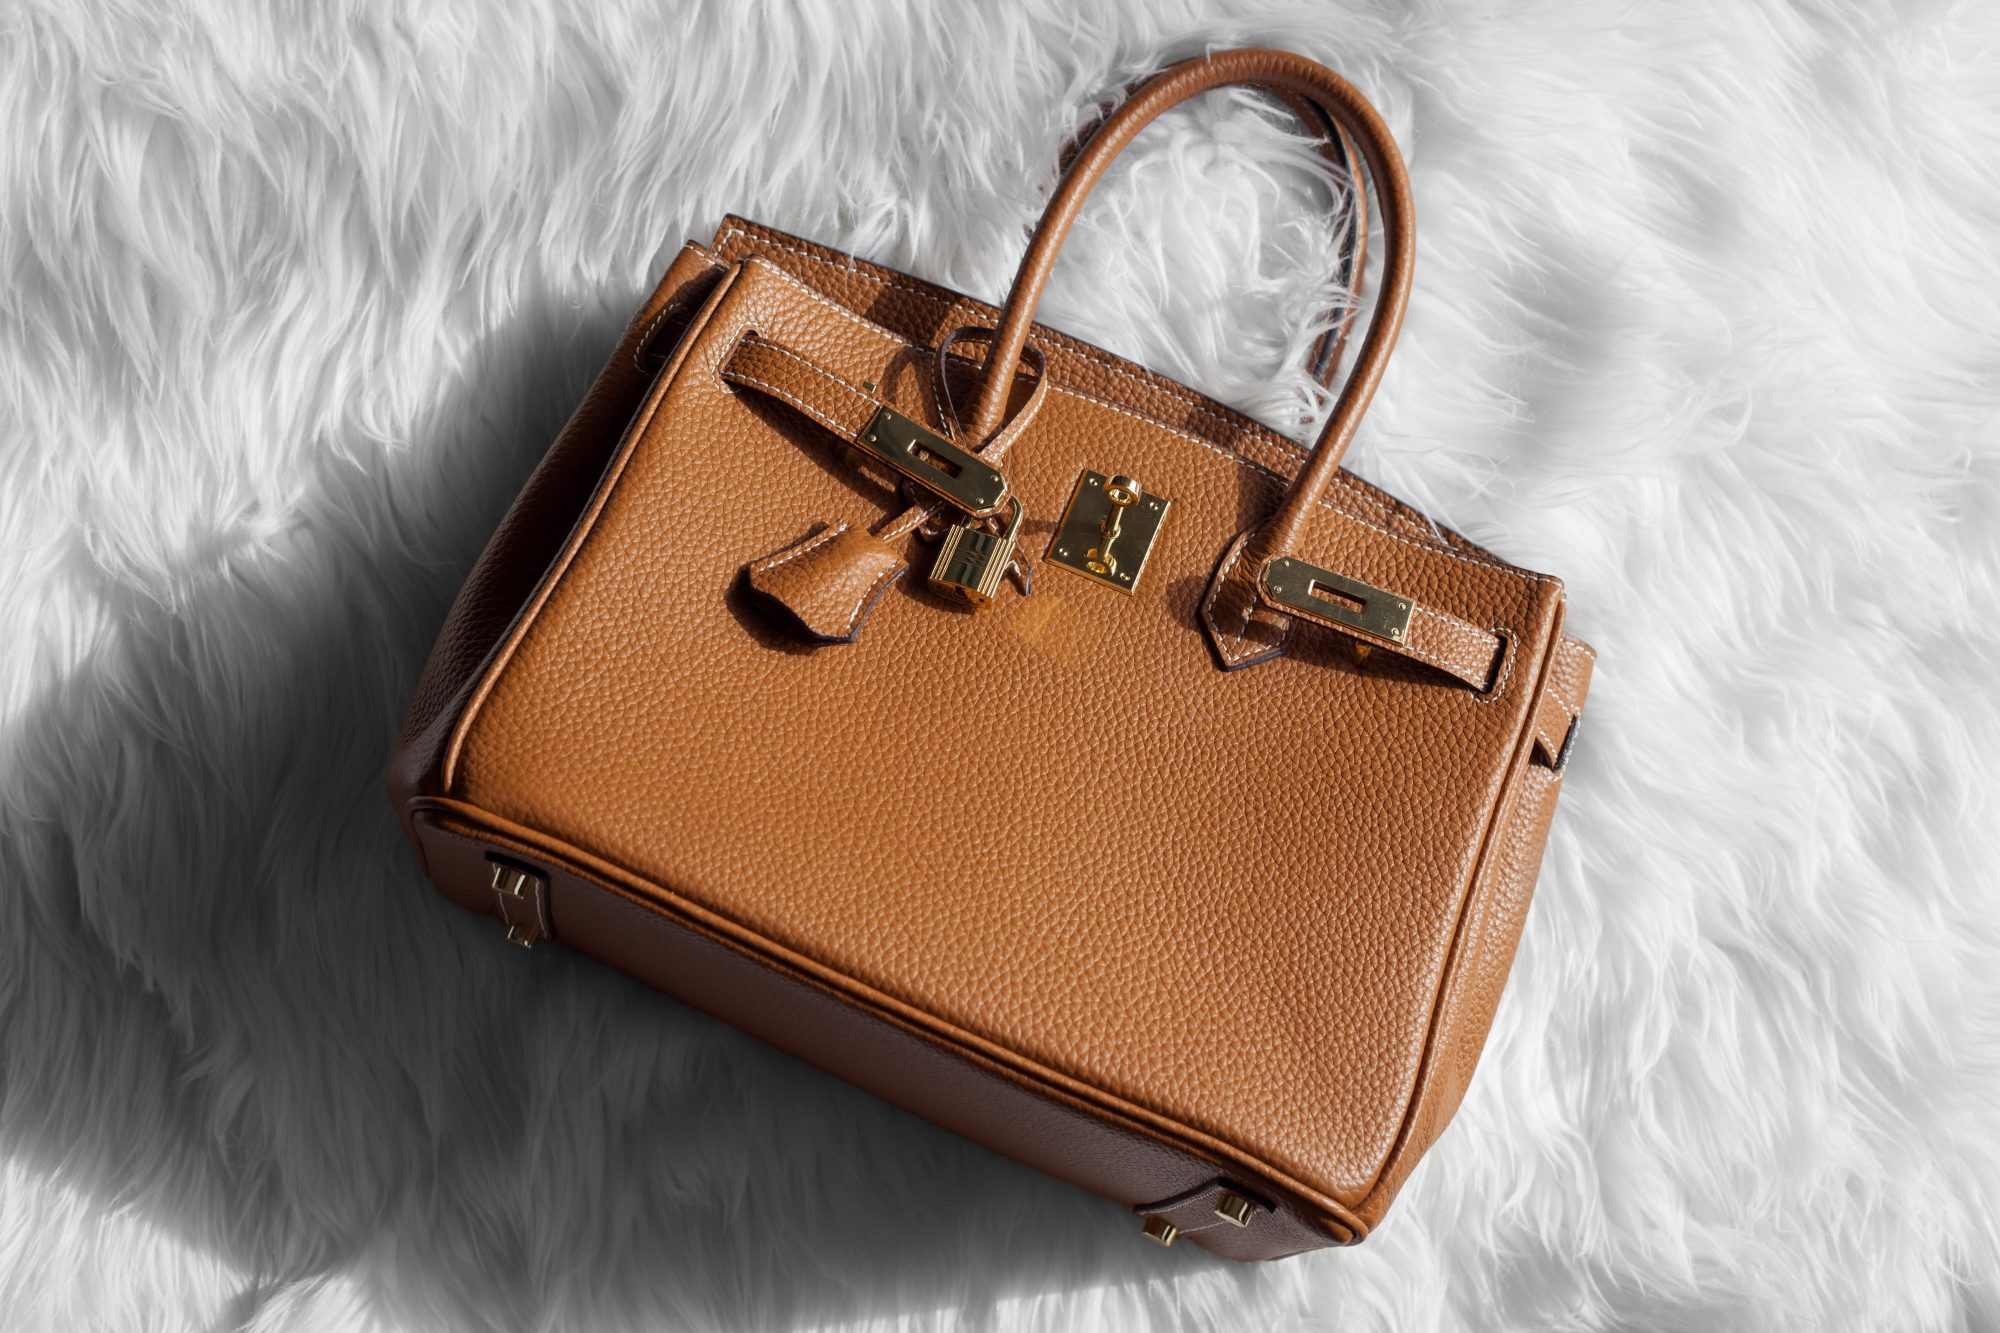 275ea2eb3a44 This tan bag is a gorgeous designer dupe of the Hermés Birkin.